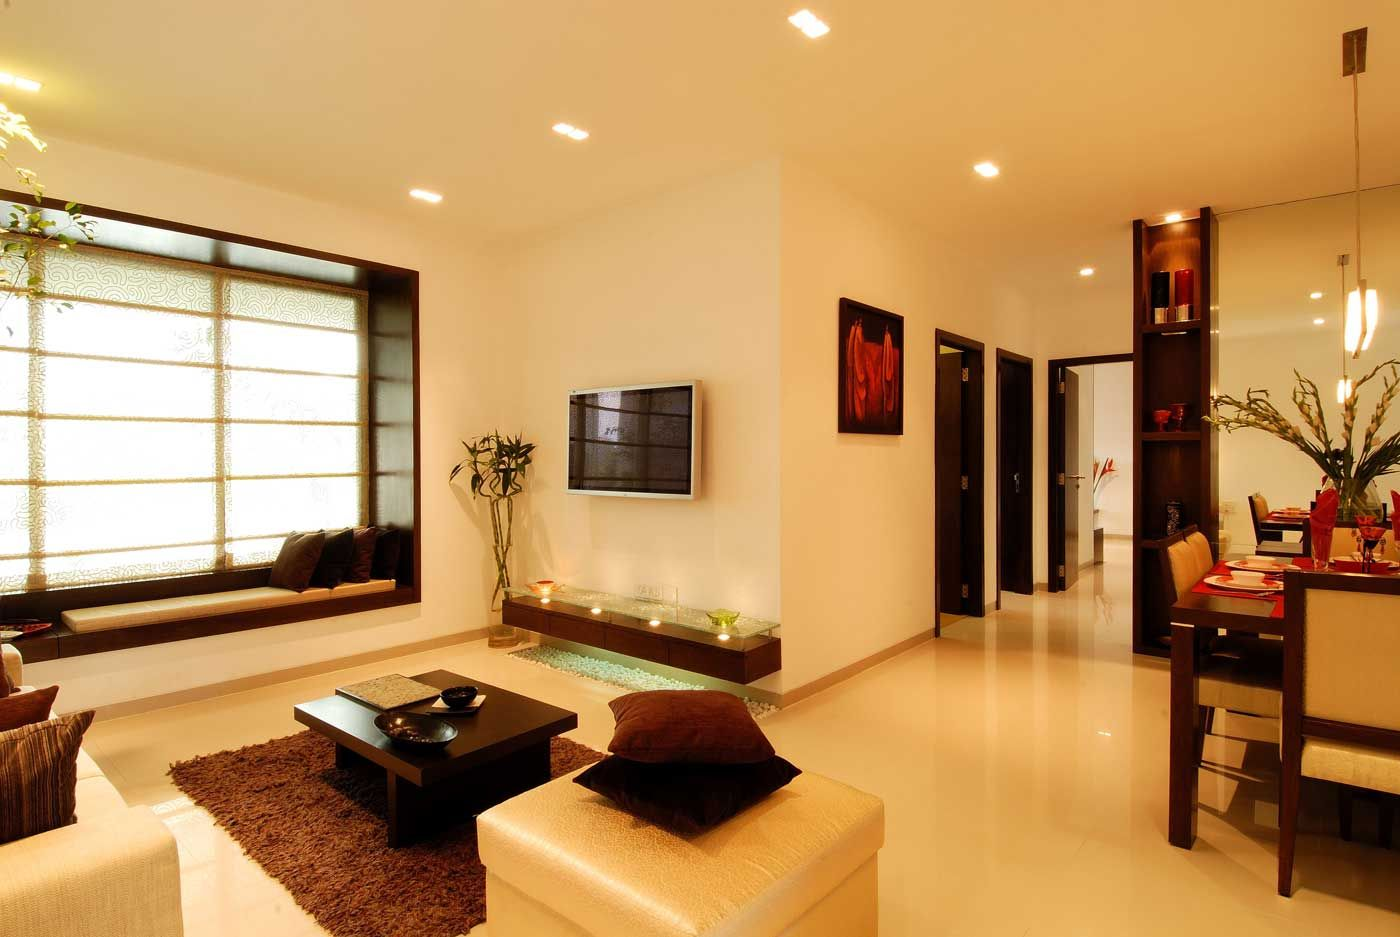 Properties in andheri flats in andheri east mumbai for 1 bhk flat interior decoration image